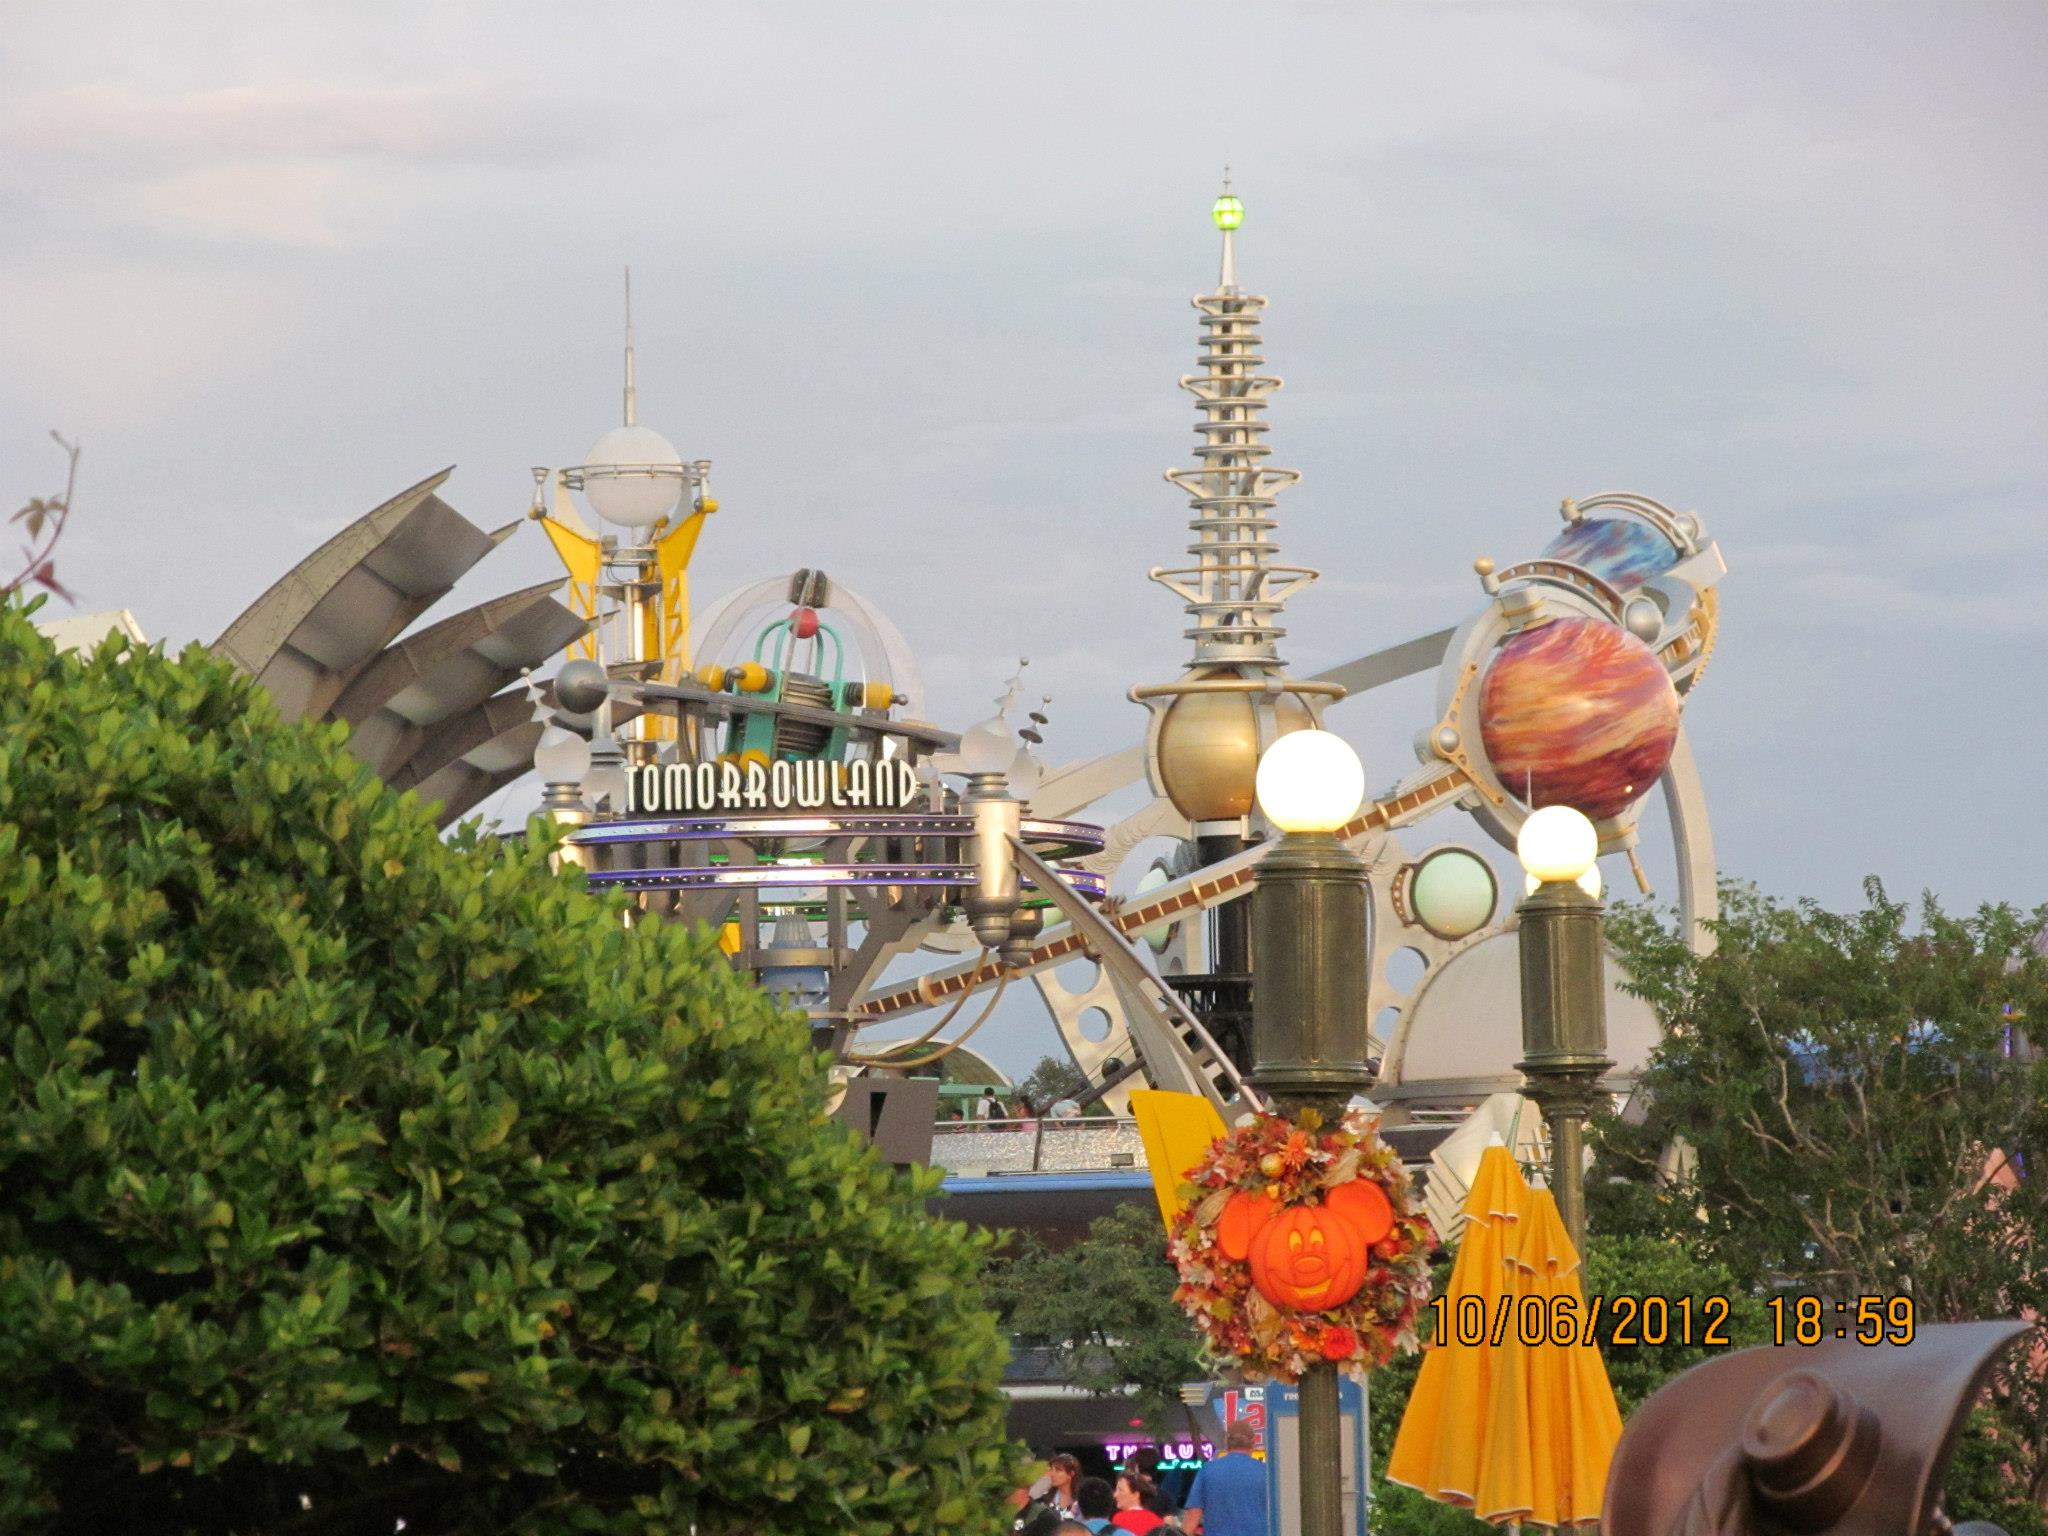 3 Confirmed and Rumored Changes Coming Soon to Tomorrowland at the Magic Kingdom